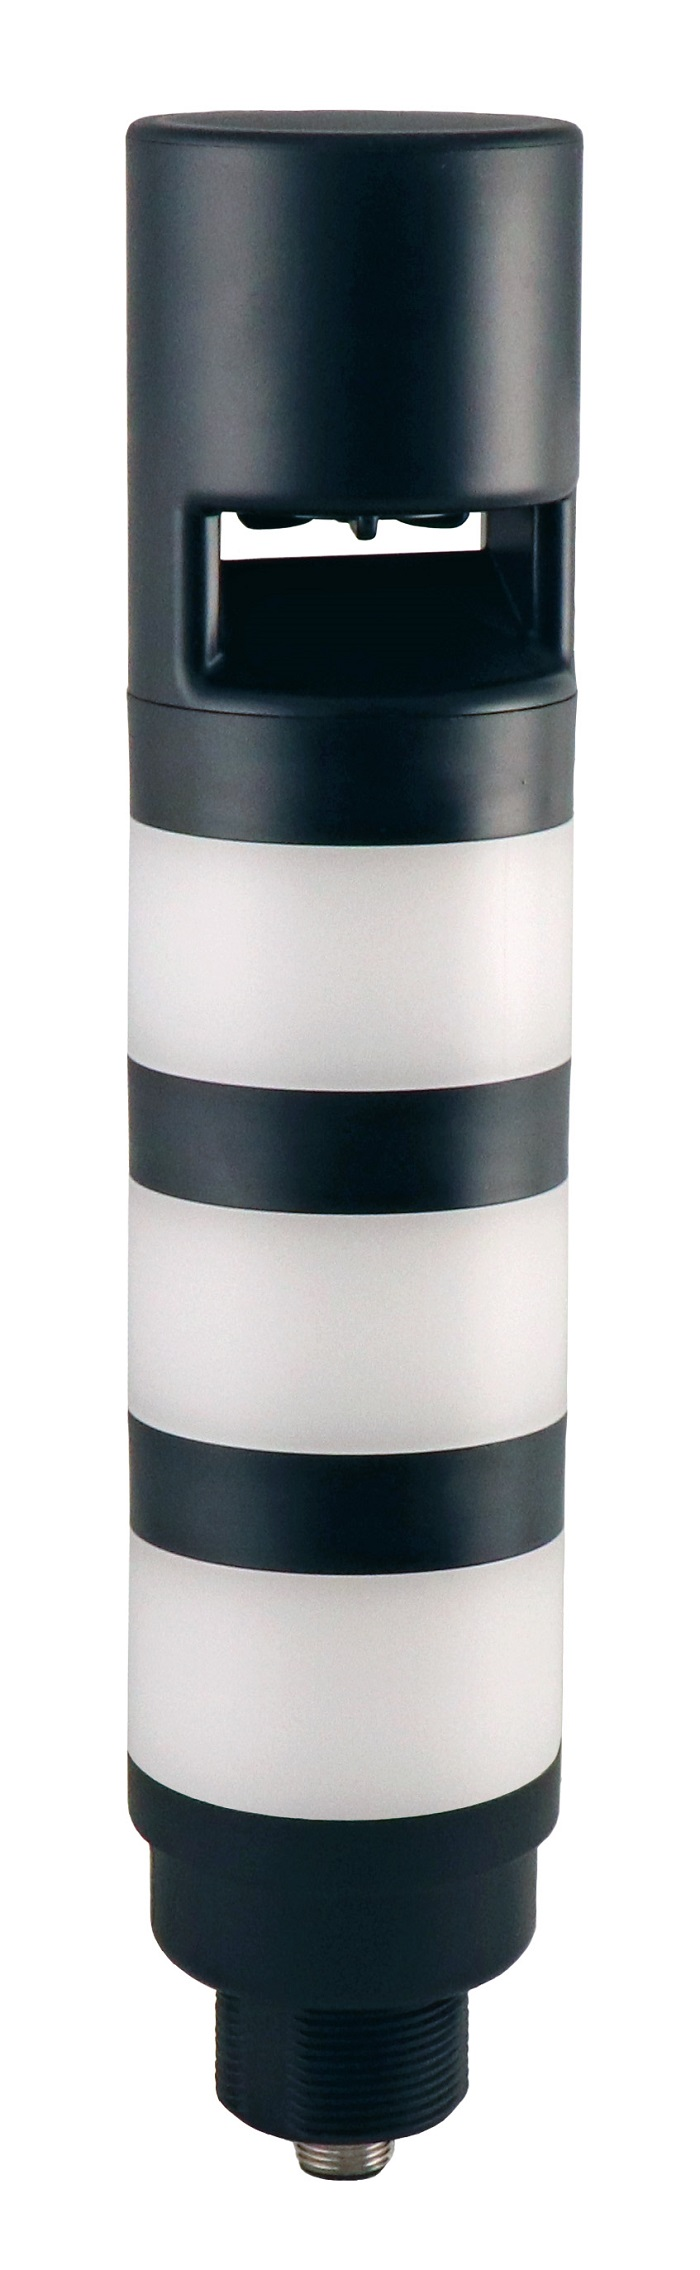 Intelli-Protect-Light-Stack-3-HR-lg